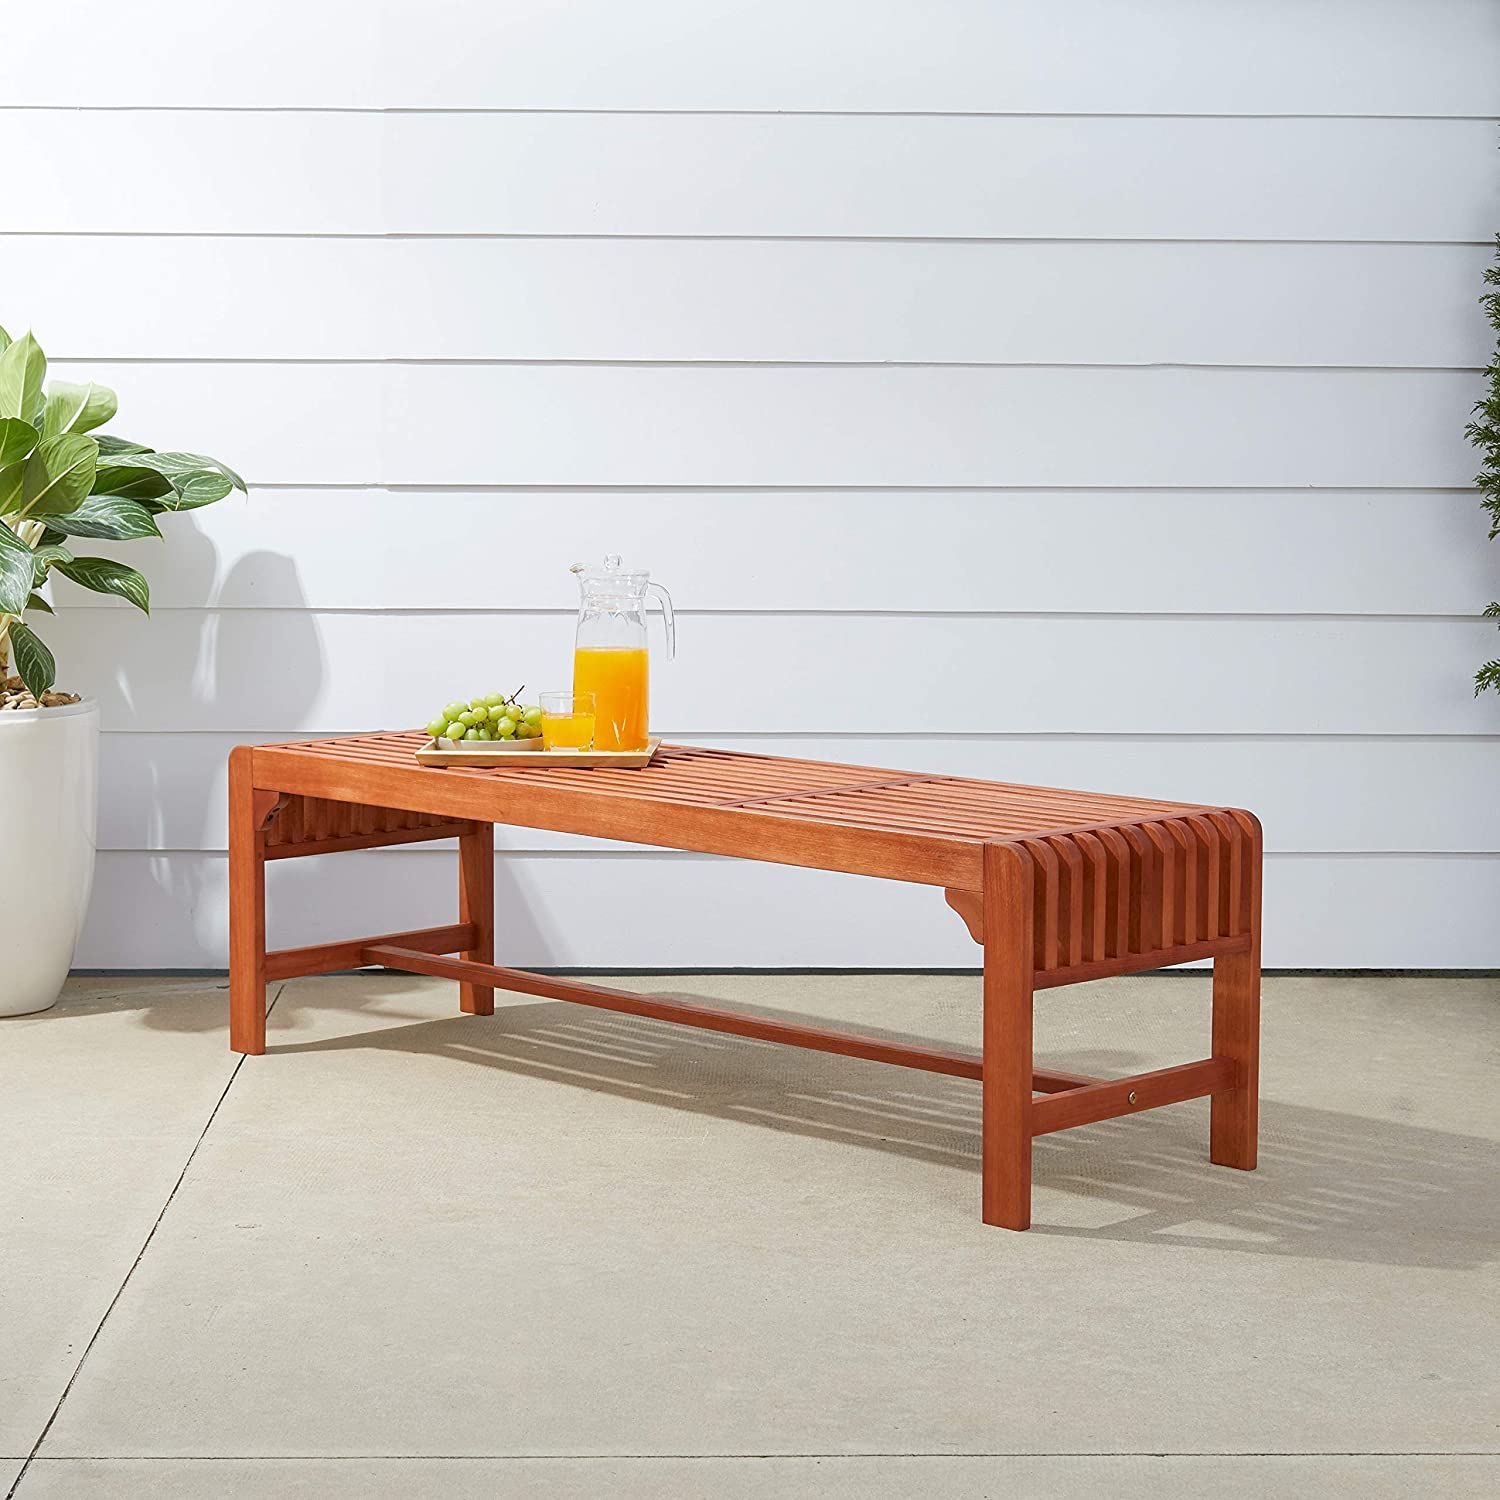 Vifah V1400 Malibu Red Brown 5Ft Rustic Eucalyptus Wooden Backless Bench for 3 Seater in Entry Way, Porch, Picnic, Garden, Patio, Backyard, Balcony, Spa, Dining, Outdoor Seating